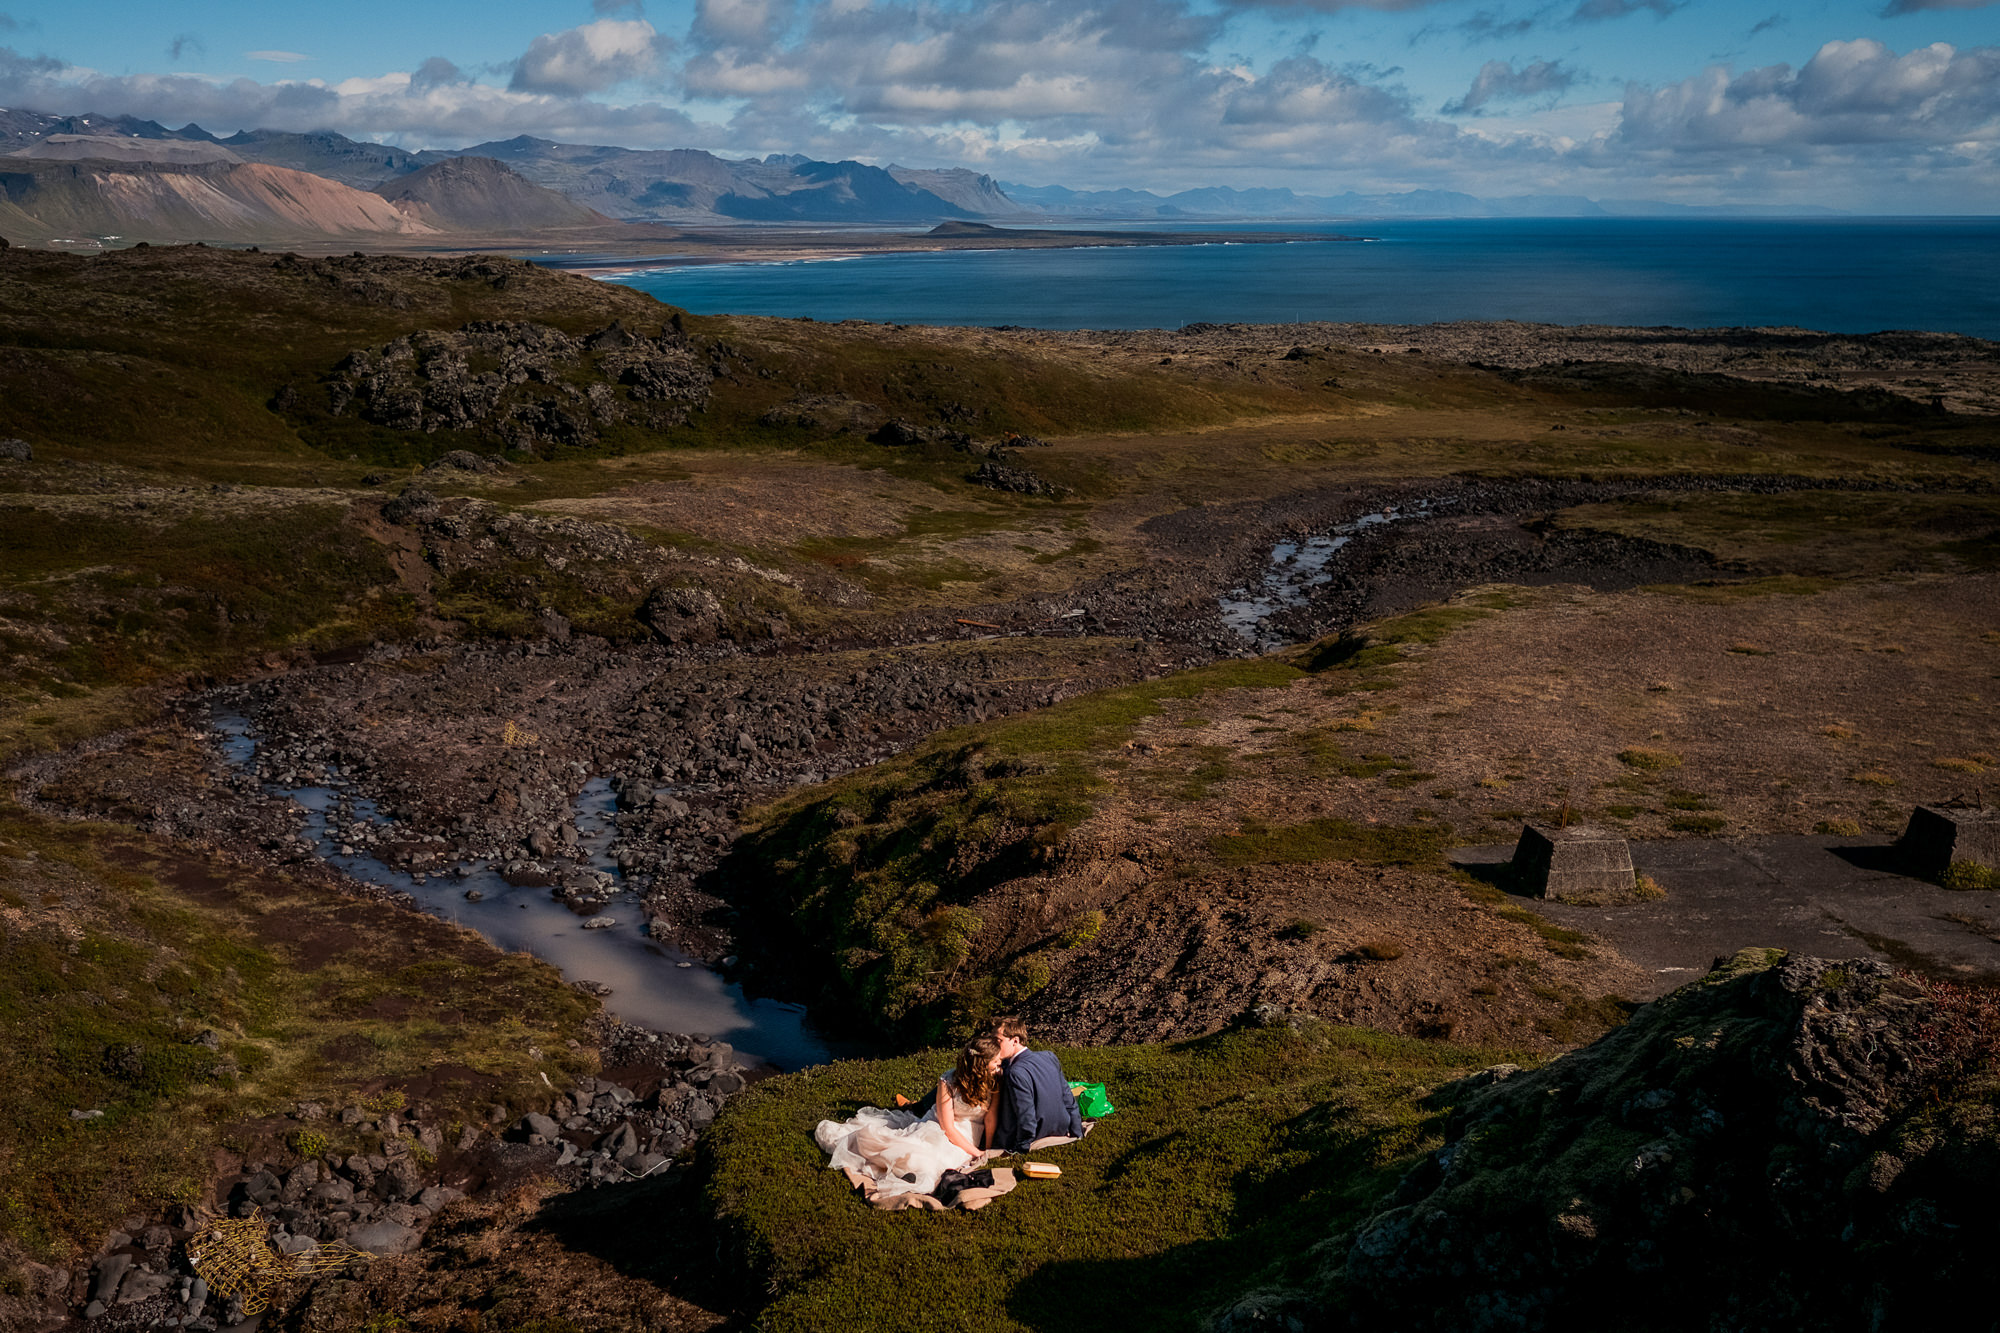 Bride and groom picnicking on rolling hills by the sea, by Nordica